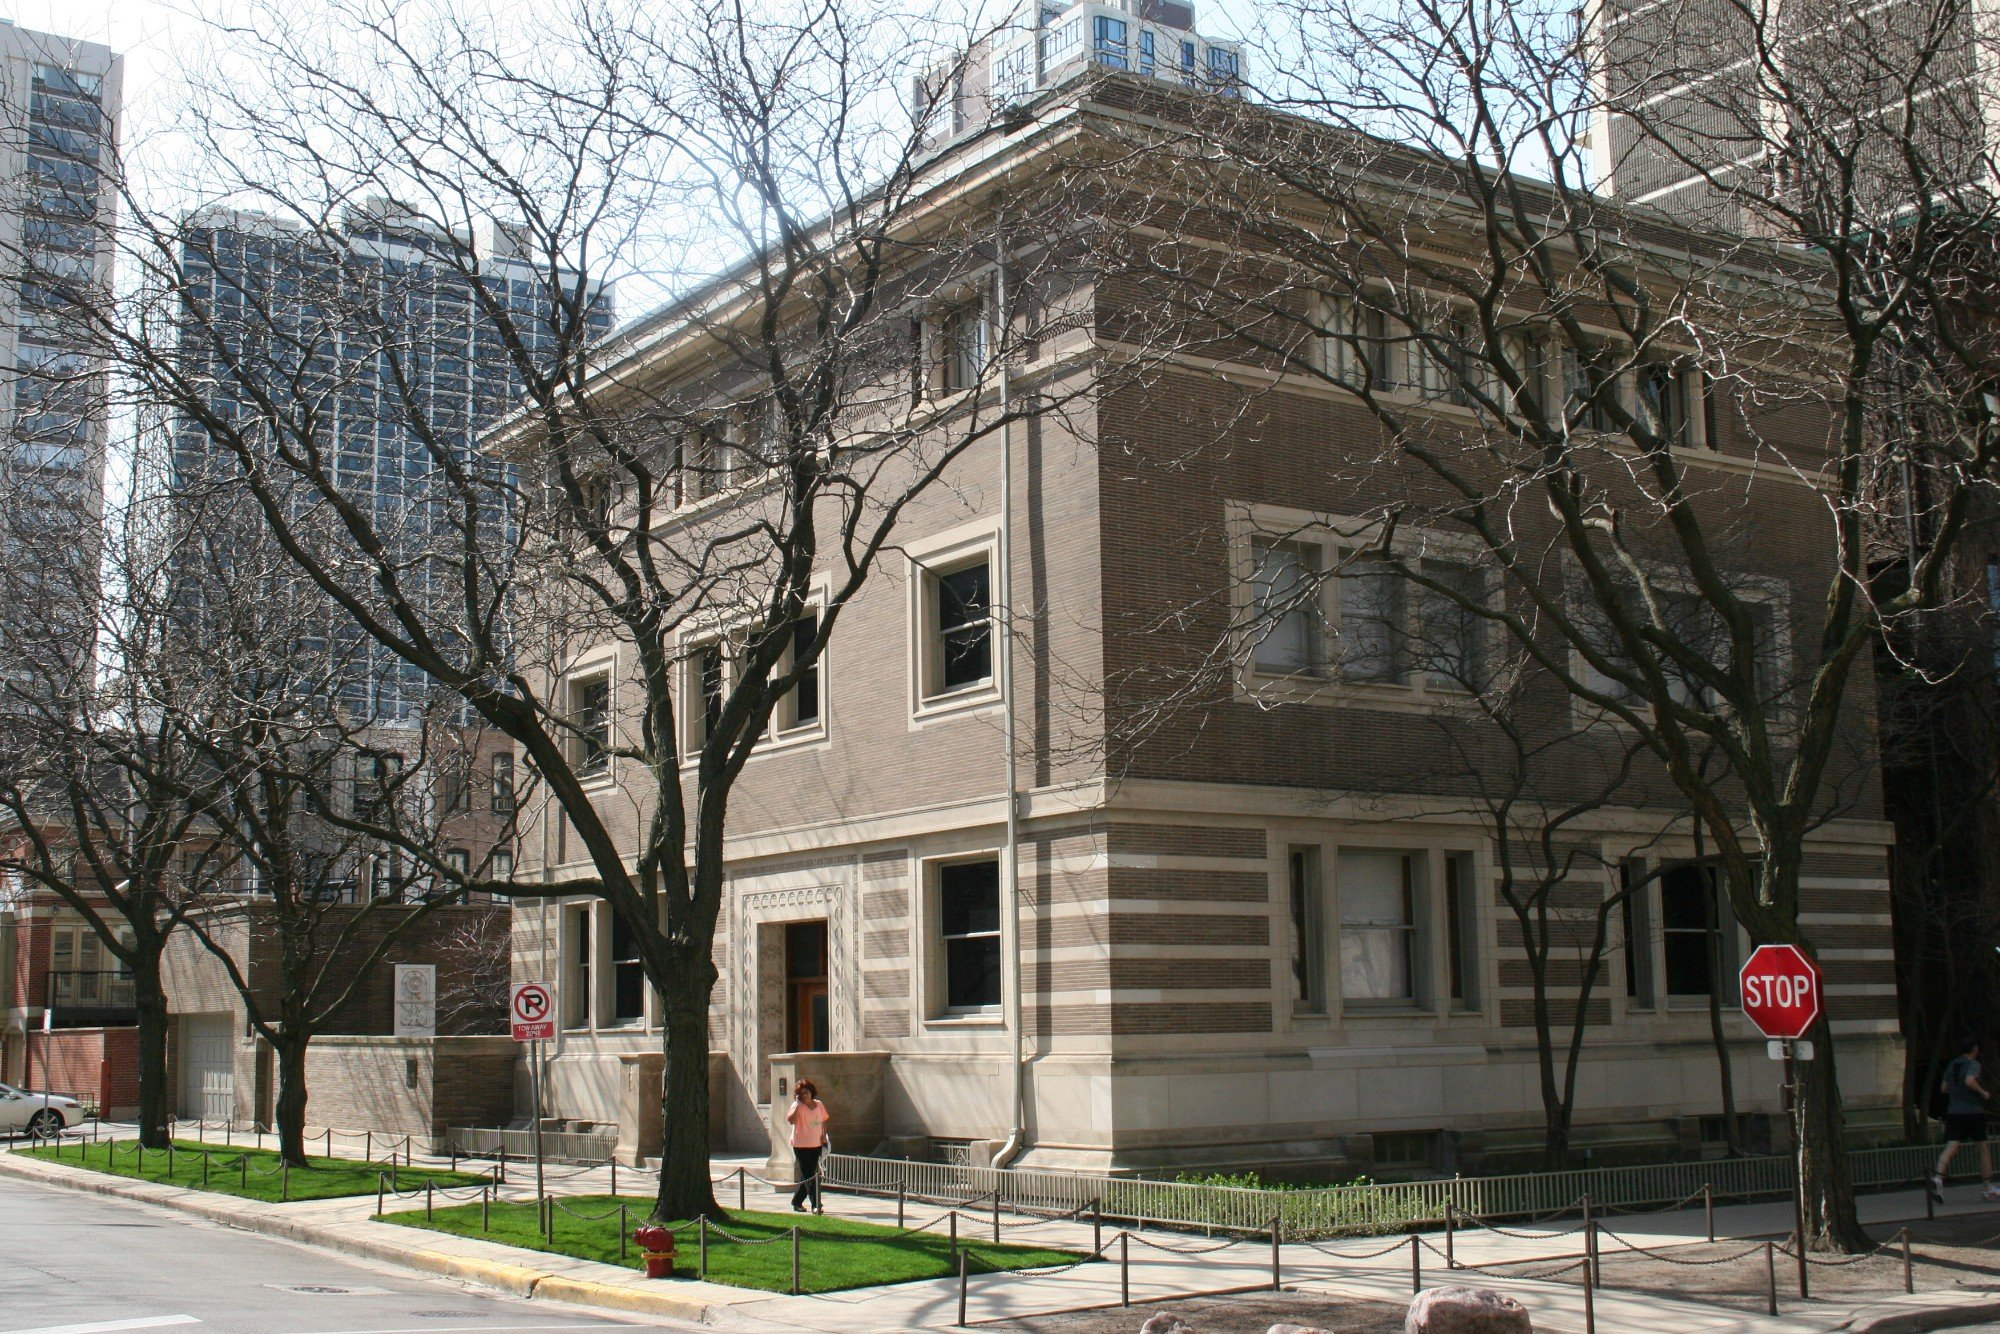 Madlener House in Chicago. Since 1963, the home has served as the headquarters of the Graham Foundation for Advanced Studies in the Fine Arts.